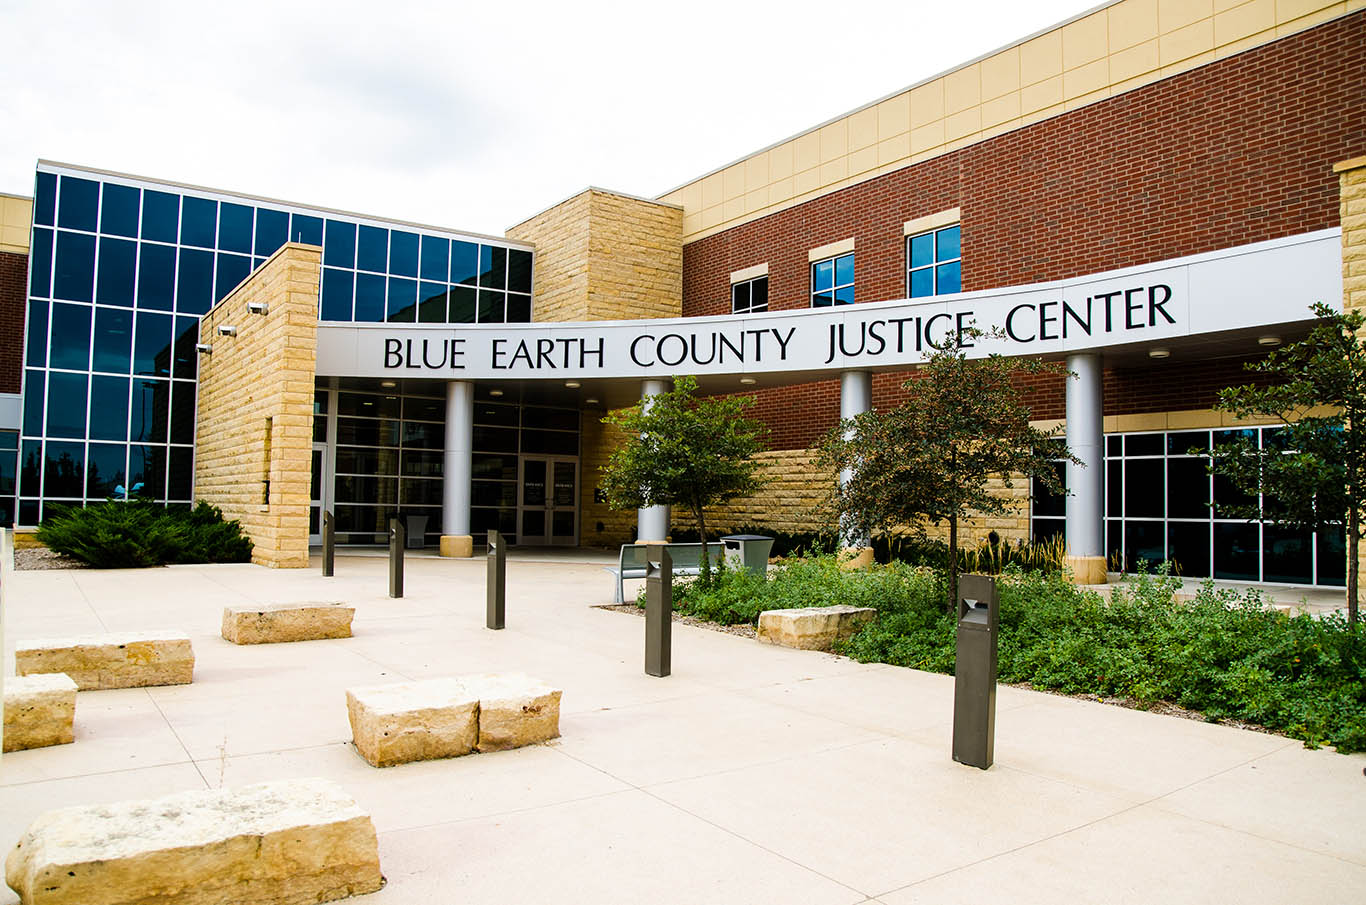 Blue Earth Justice Center